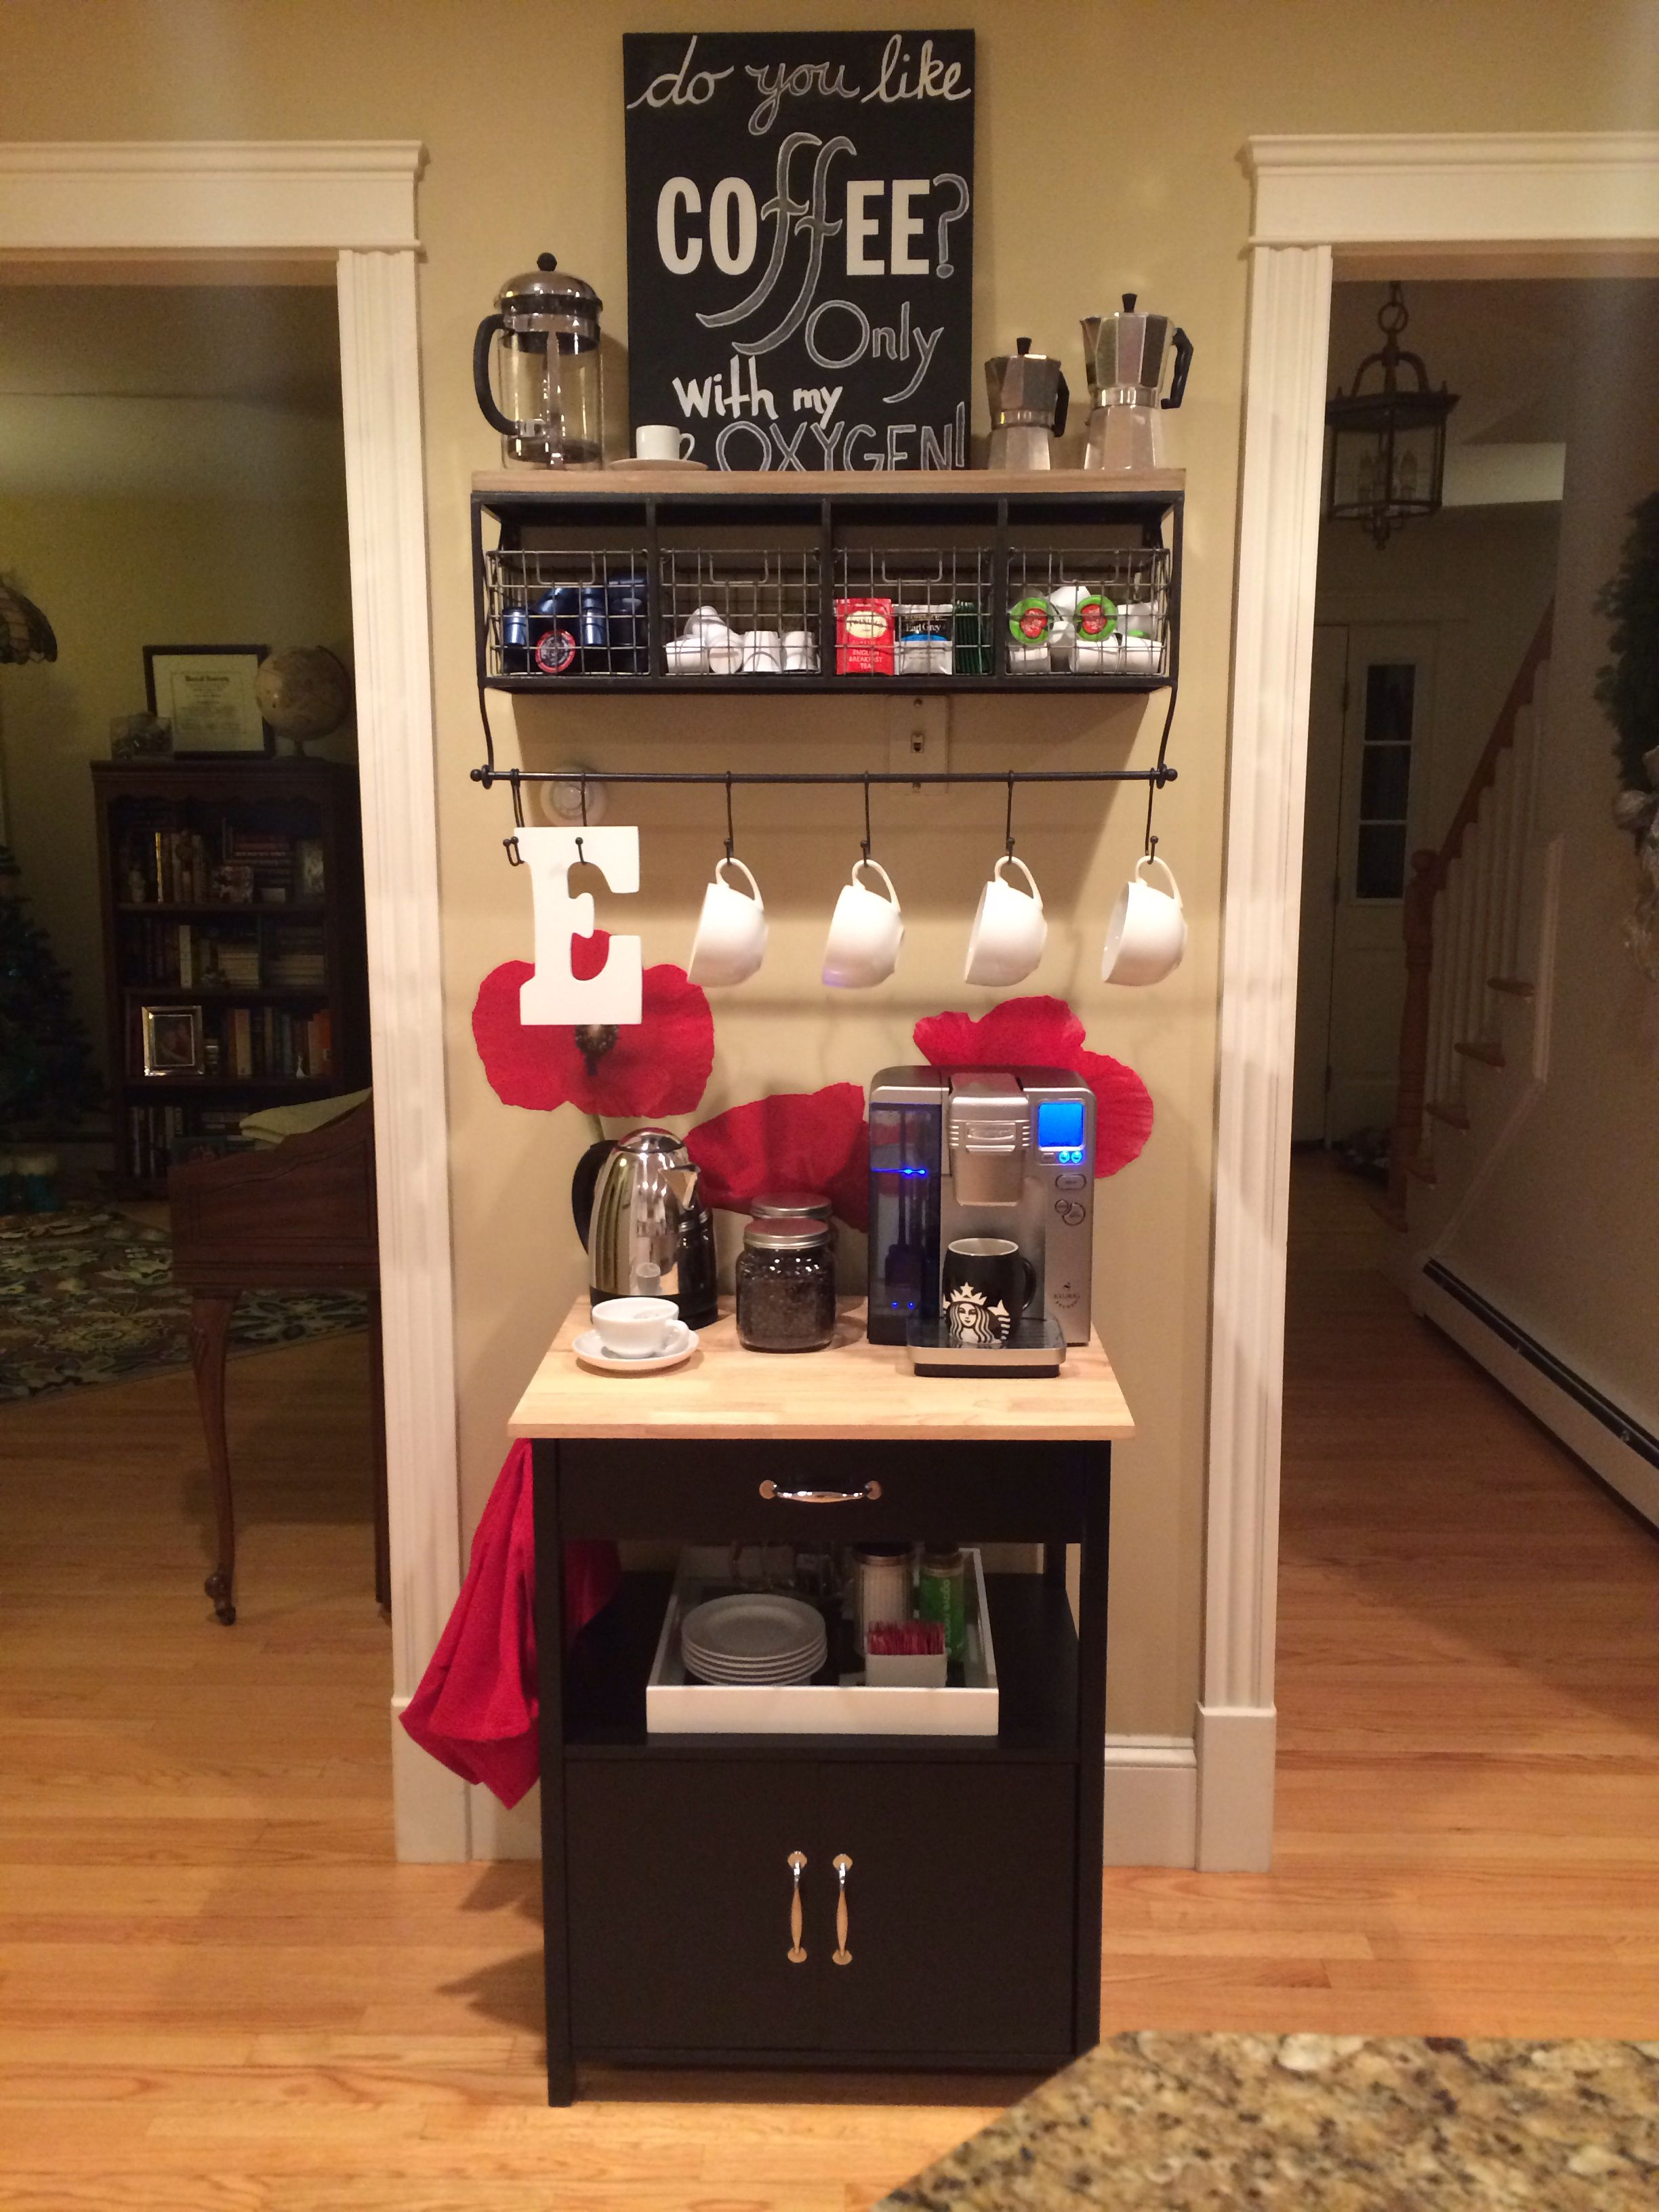 Tiny Craftsman Comes With Espresso Station: Coffee And Tea Bar... Just To Clarify, I Do NOT Like The